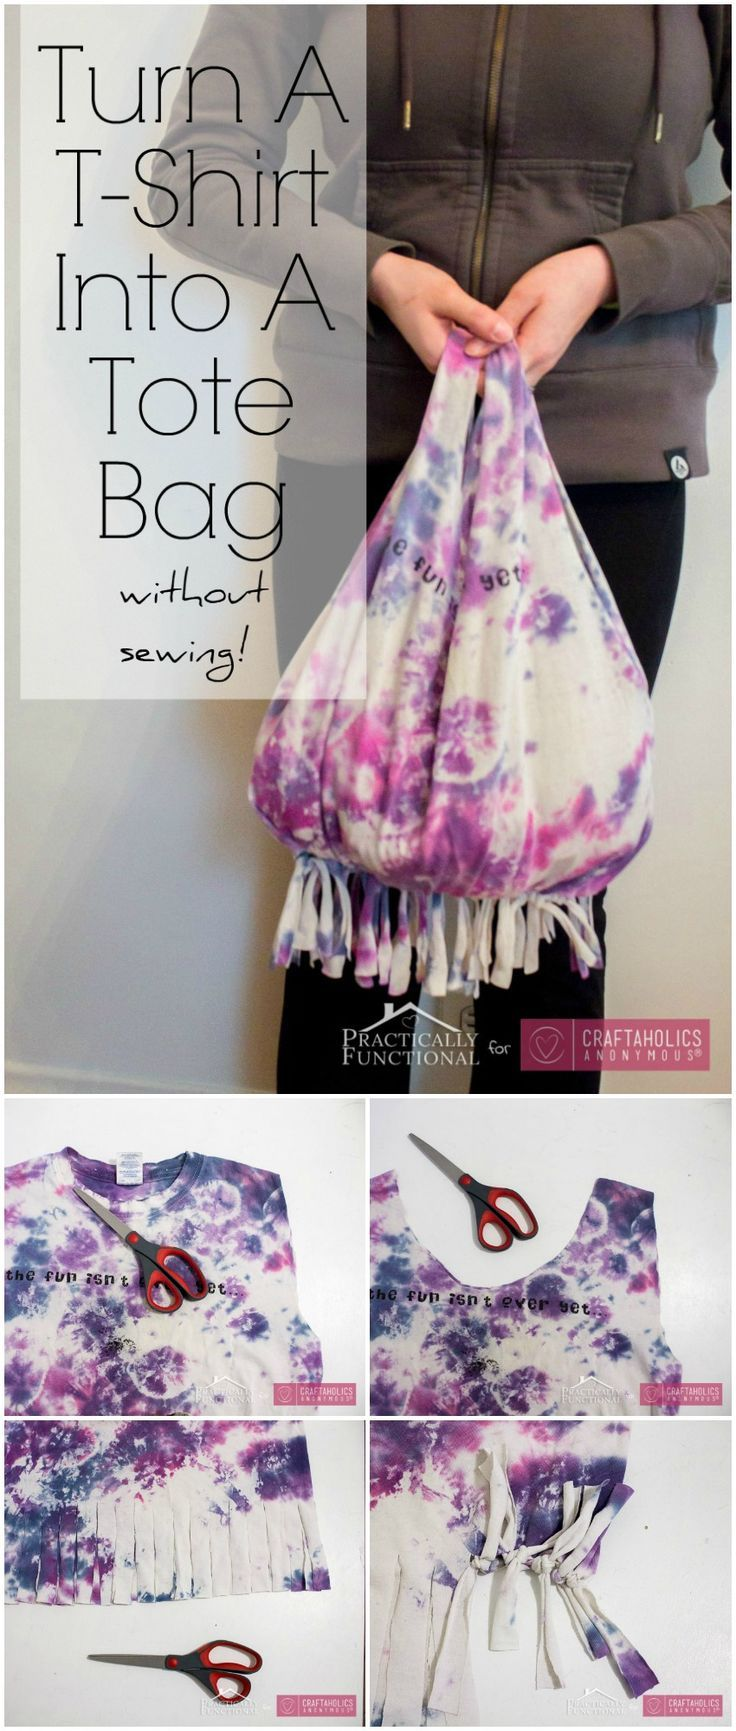 No-Sew T-shirt Bag Tutorial #recycledcrafts